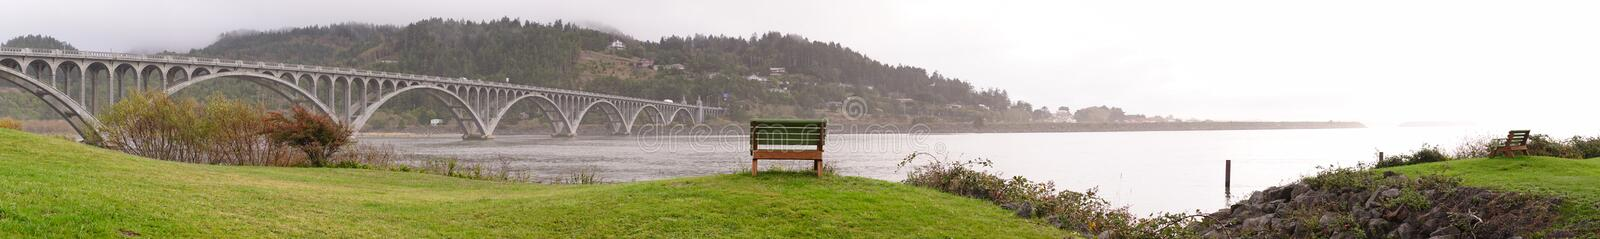 Rogue River Bridge Curry County Gold Beach Oregon Waterfront Bench stock images